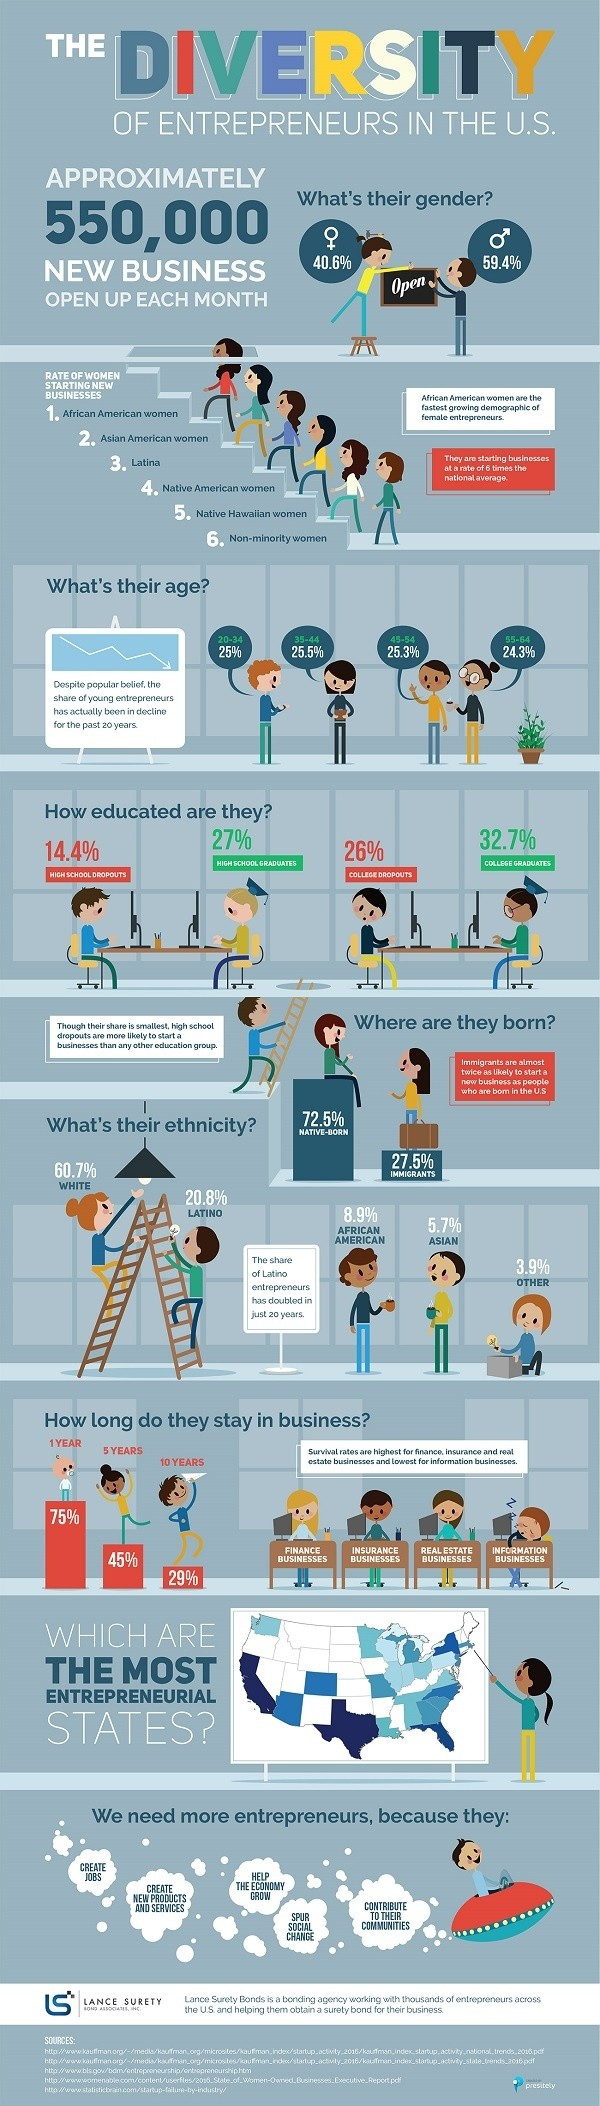 this infographic shows entrepreneurship is becoming more diverse